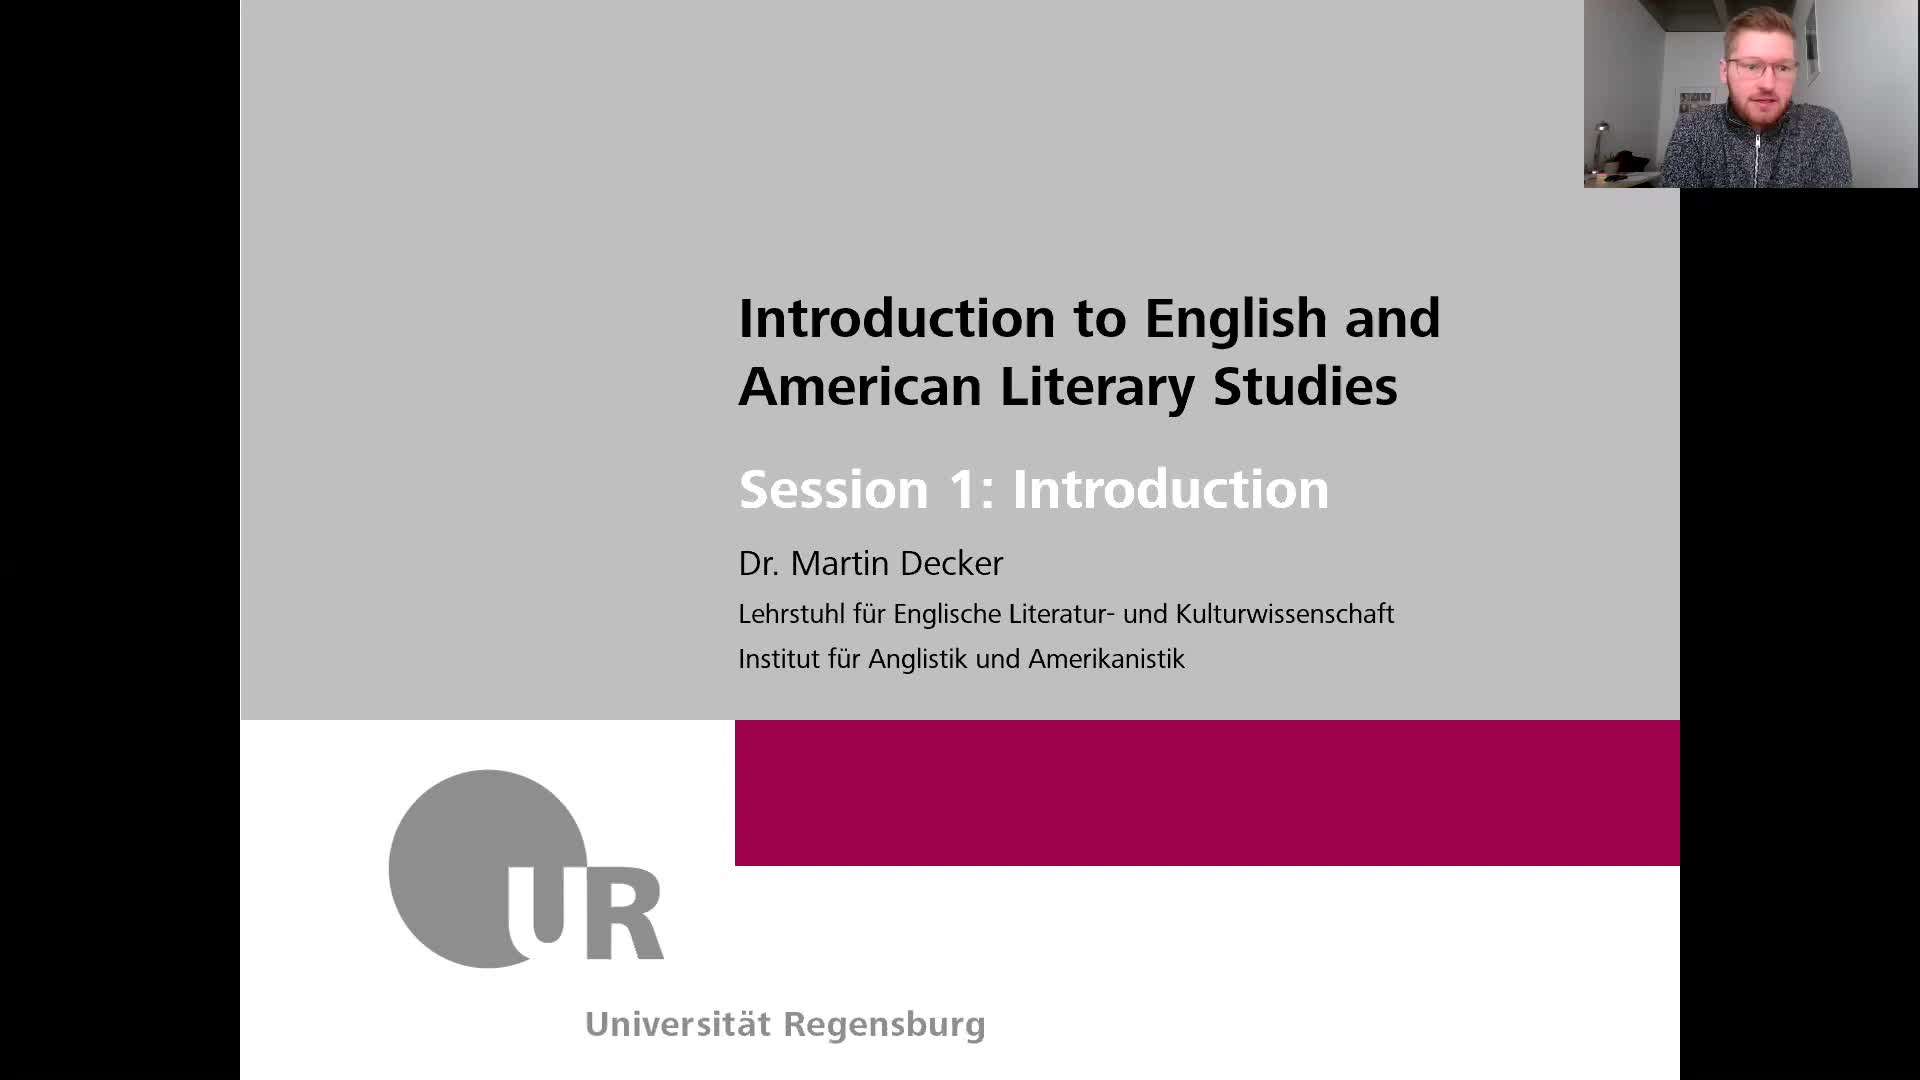 Introduction to English and American Literary Studies - LECTURE - Session 1